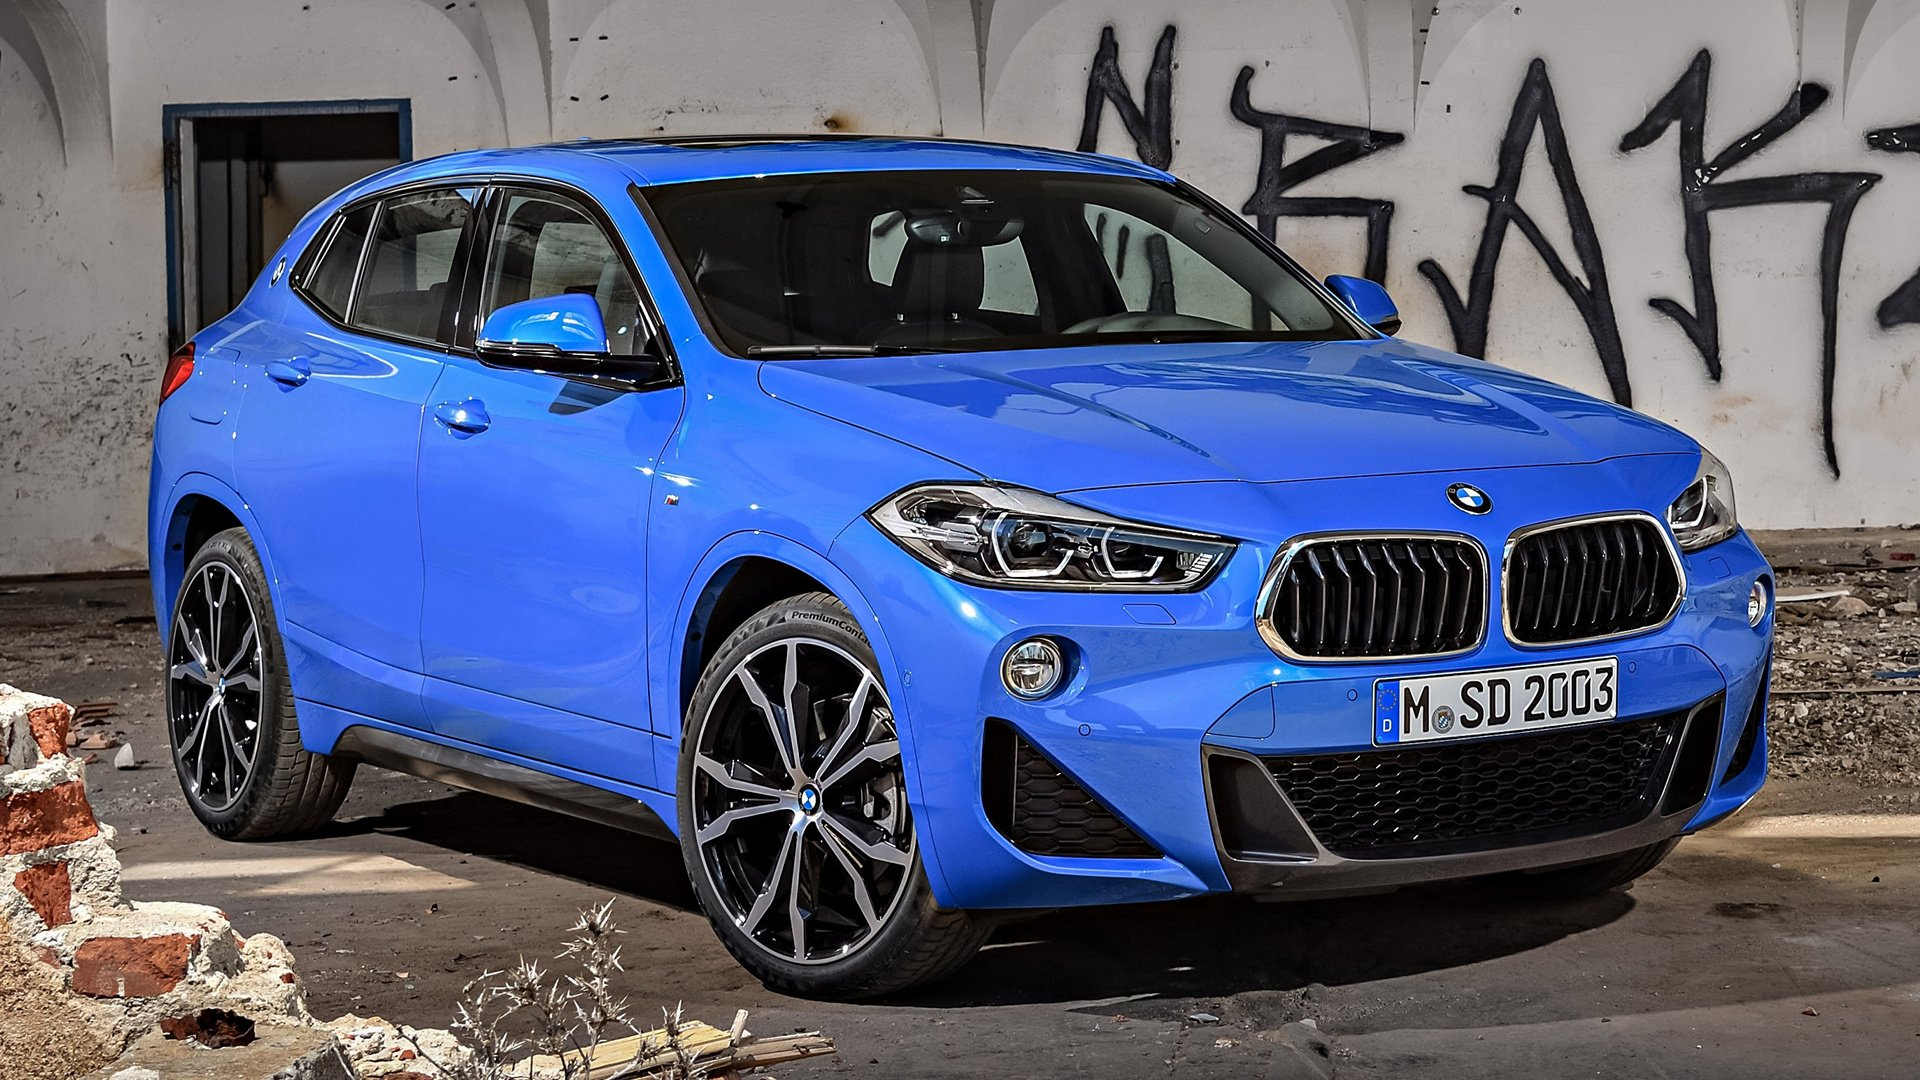 2018 bmw x2 m sport full hd wallpaper and background image 1920x1080 id 880153. Black Bedroom Furniture Sets. Home Design Ideas